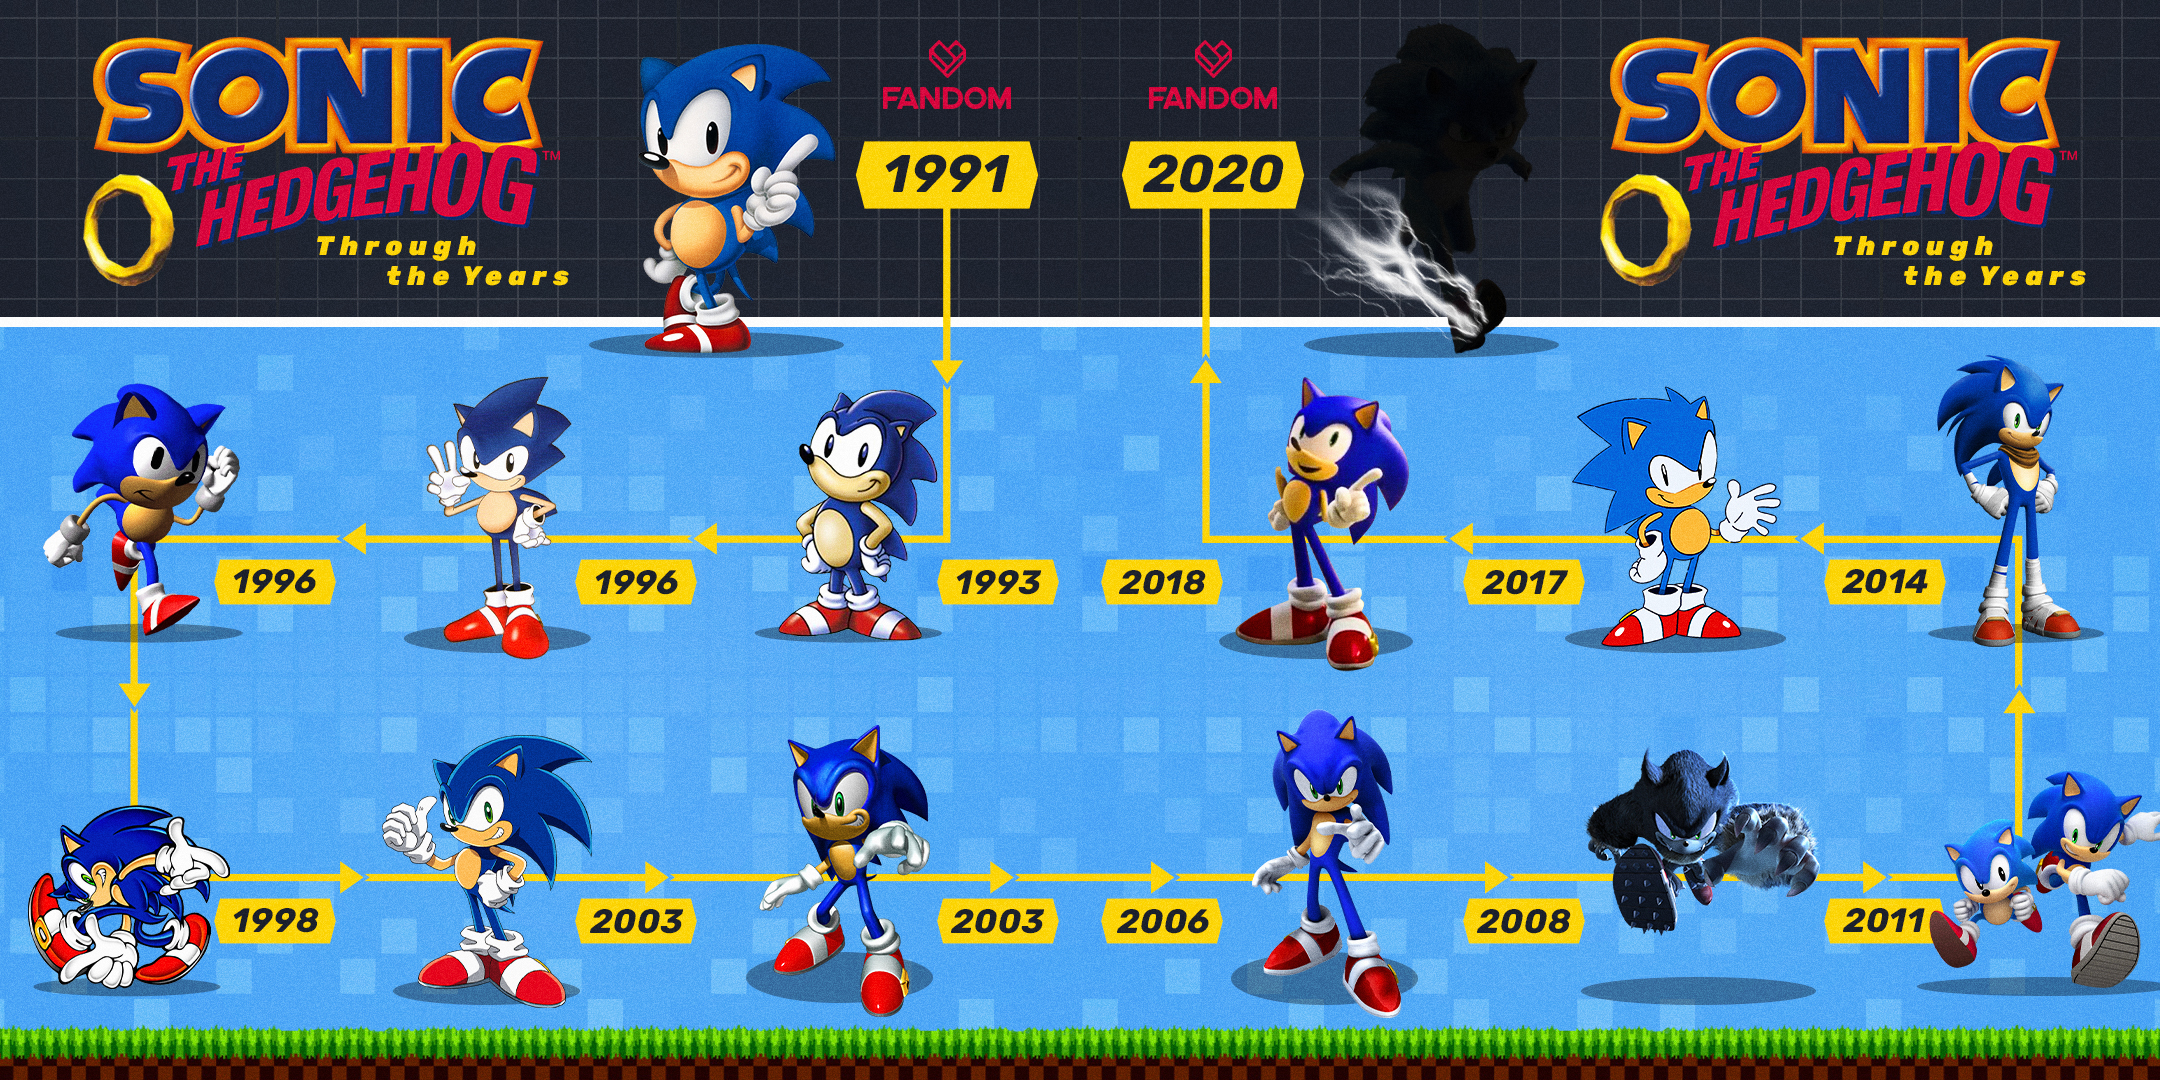 Which version of Sonic should the movie version take after?